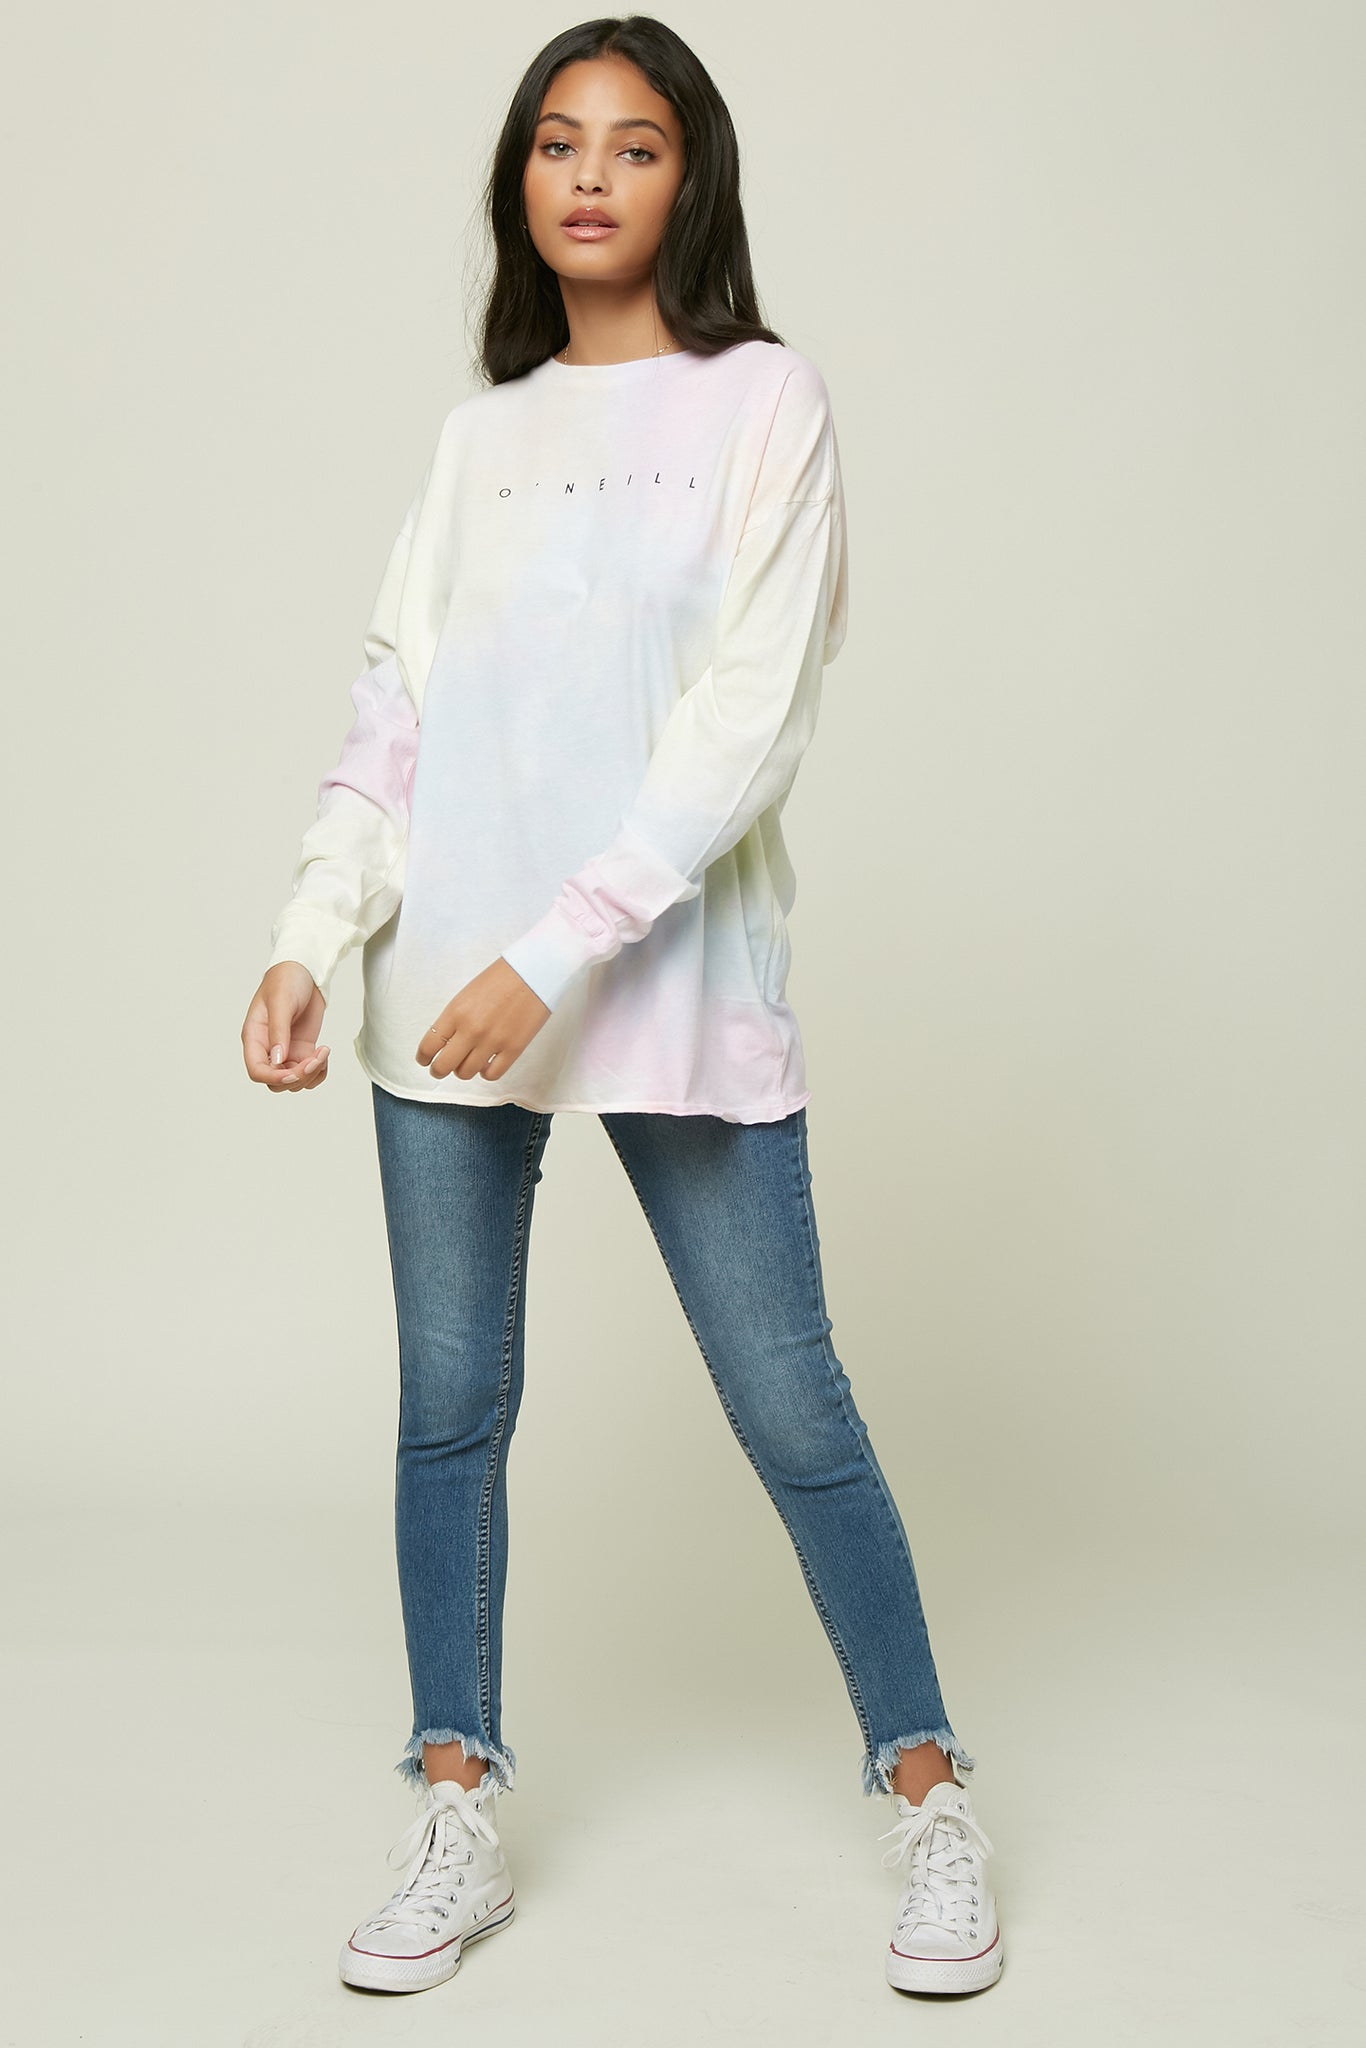 Initial Long Sleeve Tee - Multi Colored | O'Neill